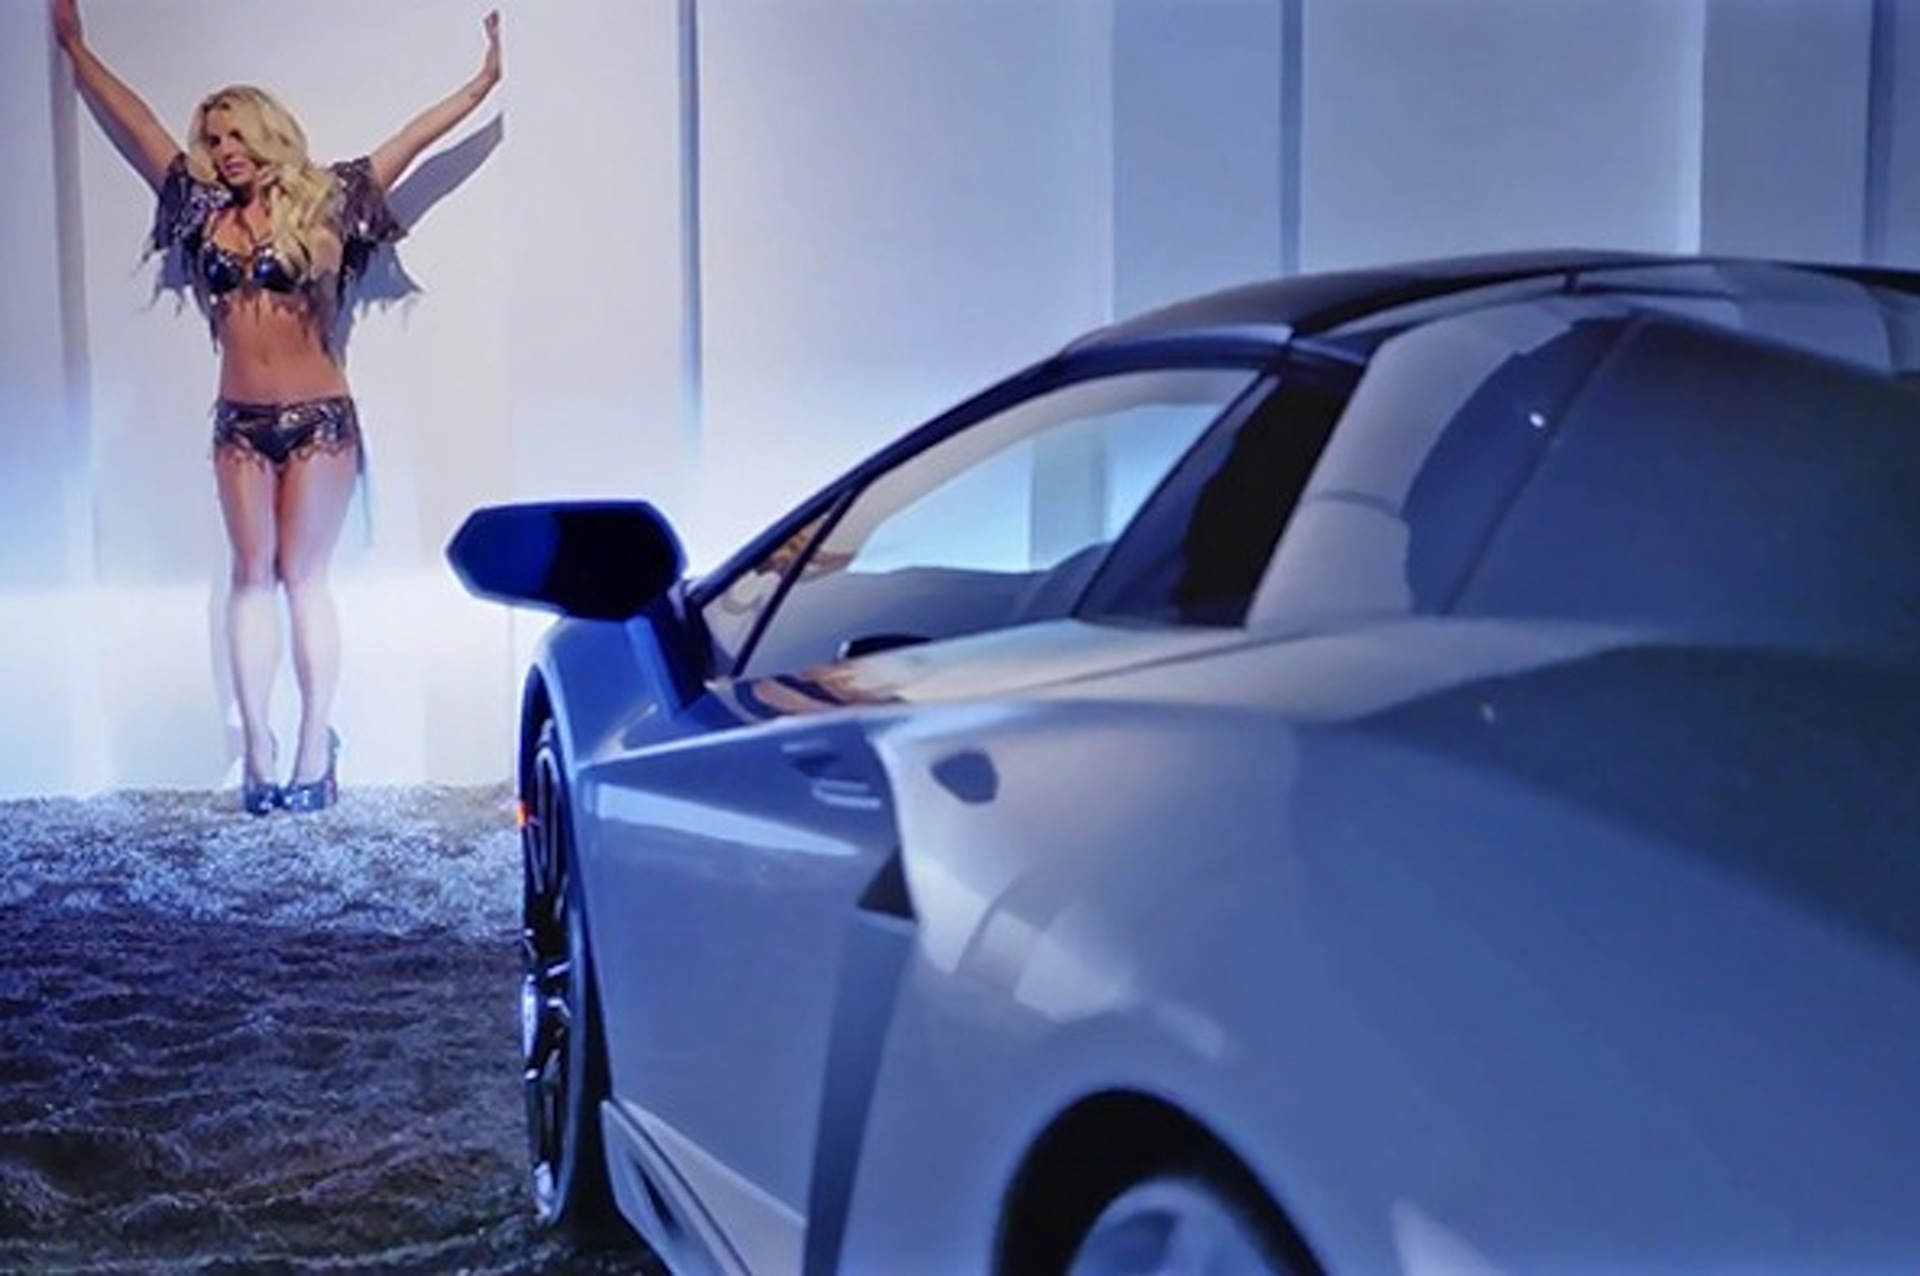 How A Lamborghini Became the Real Star of Britney Spears' Latest Music Video